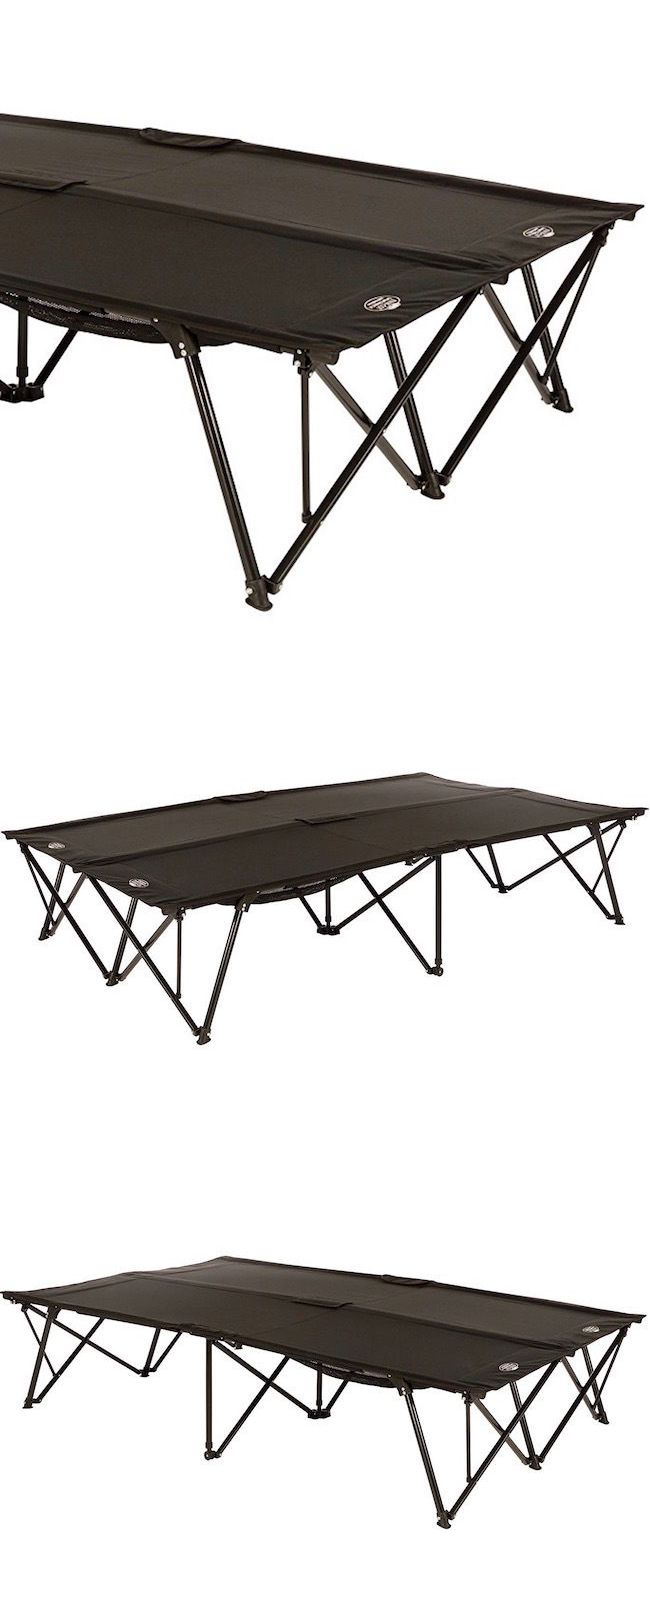 Cots 87099: Double-Camping-Cot-1-Or-2-Person-Camp-Sleeping-Folding-Portable-Queen-Bed -> BUY IT NOW ONLY: $168.9 on eBay!